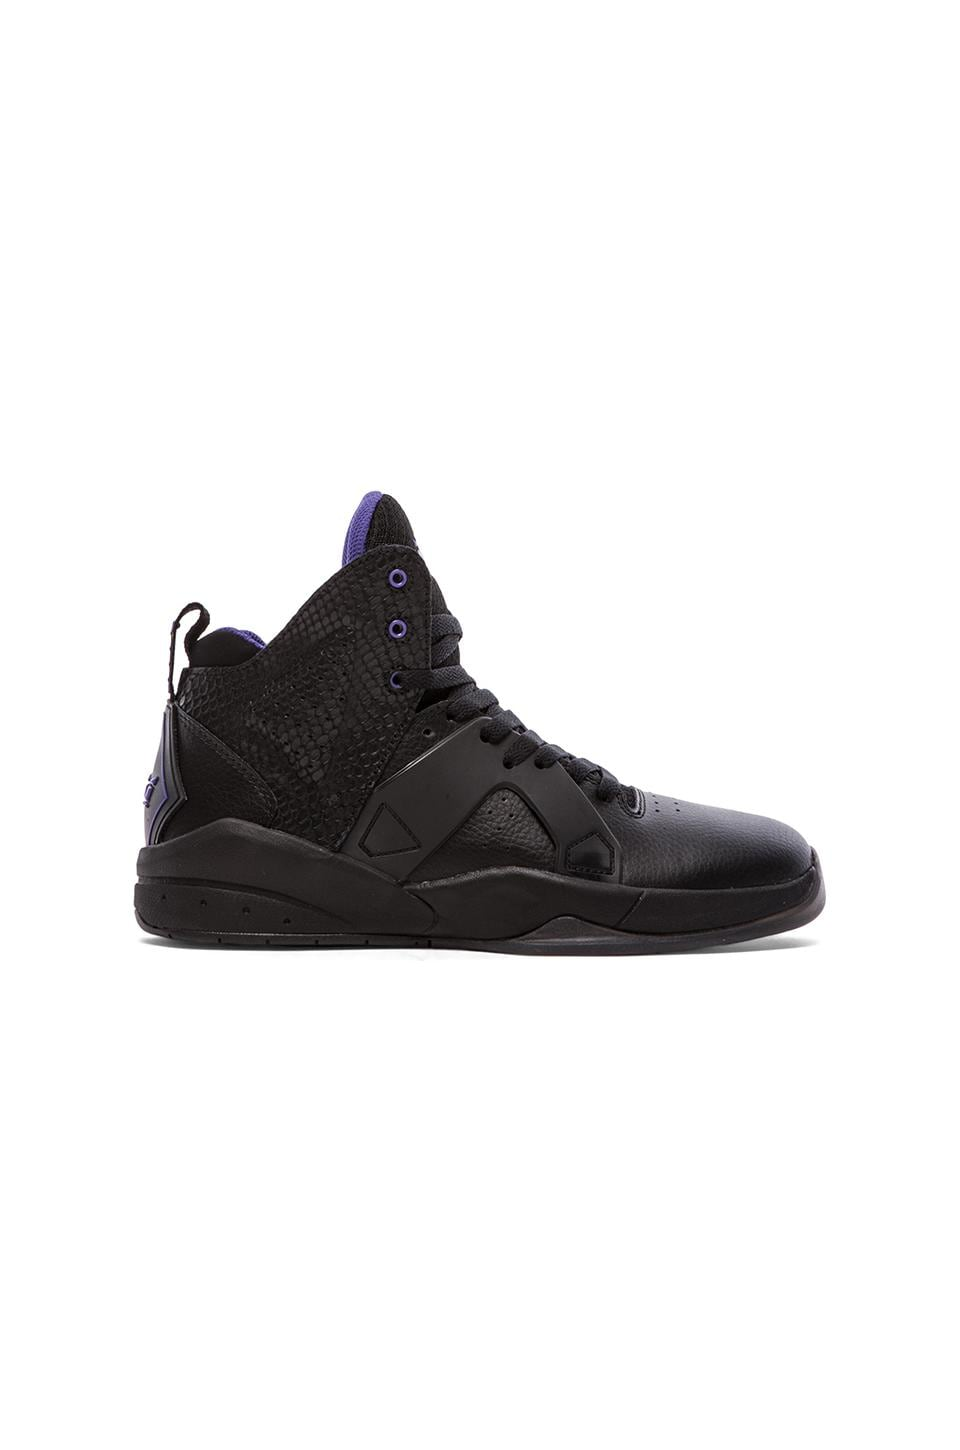 Supra Magazine in Black/Black